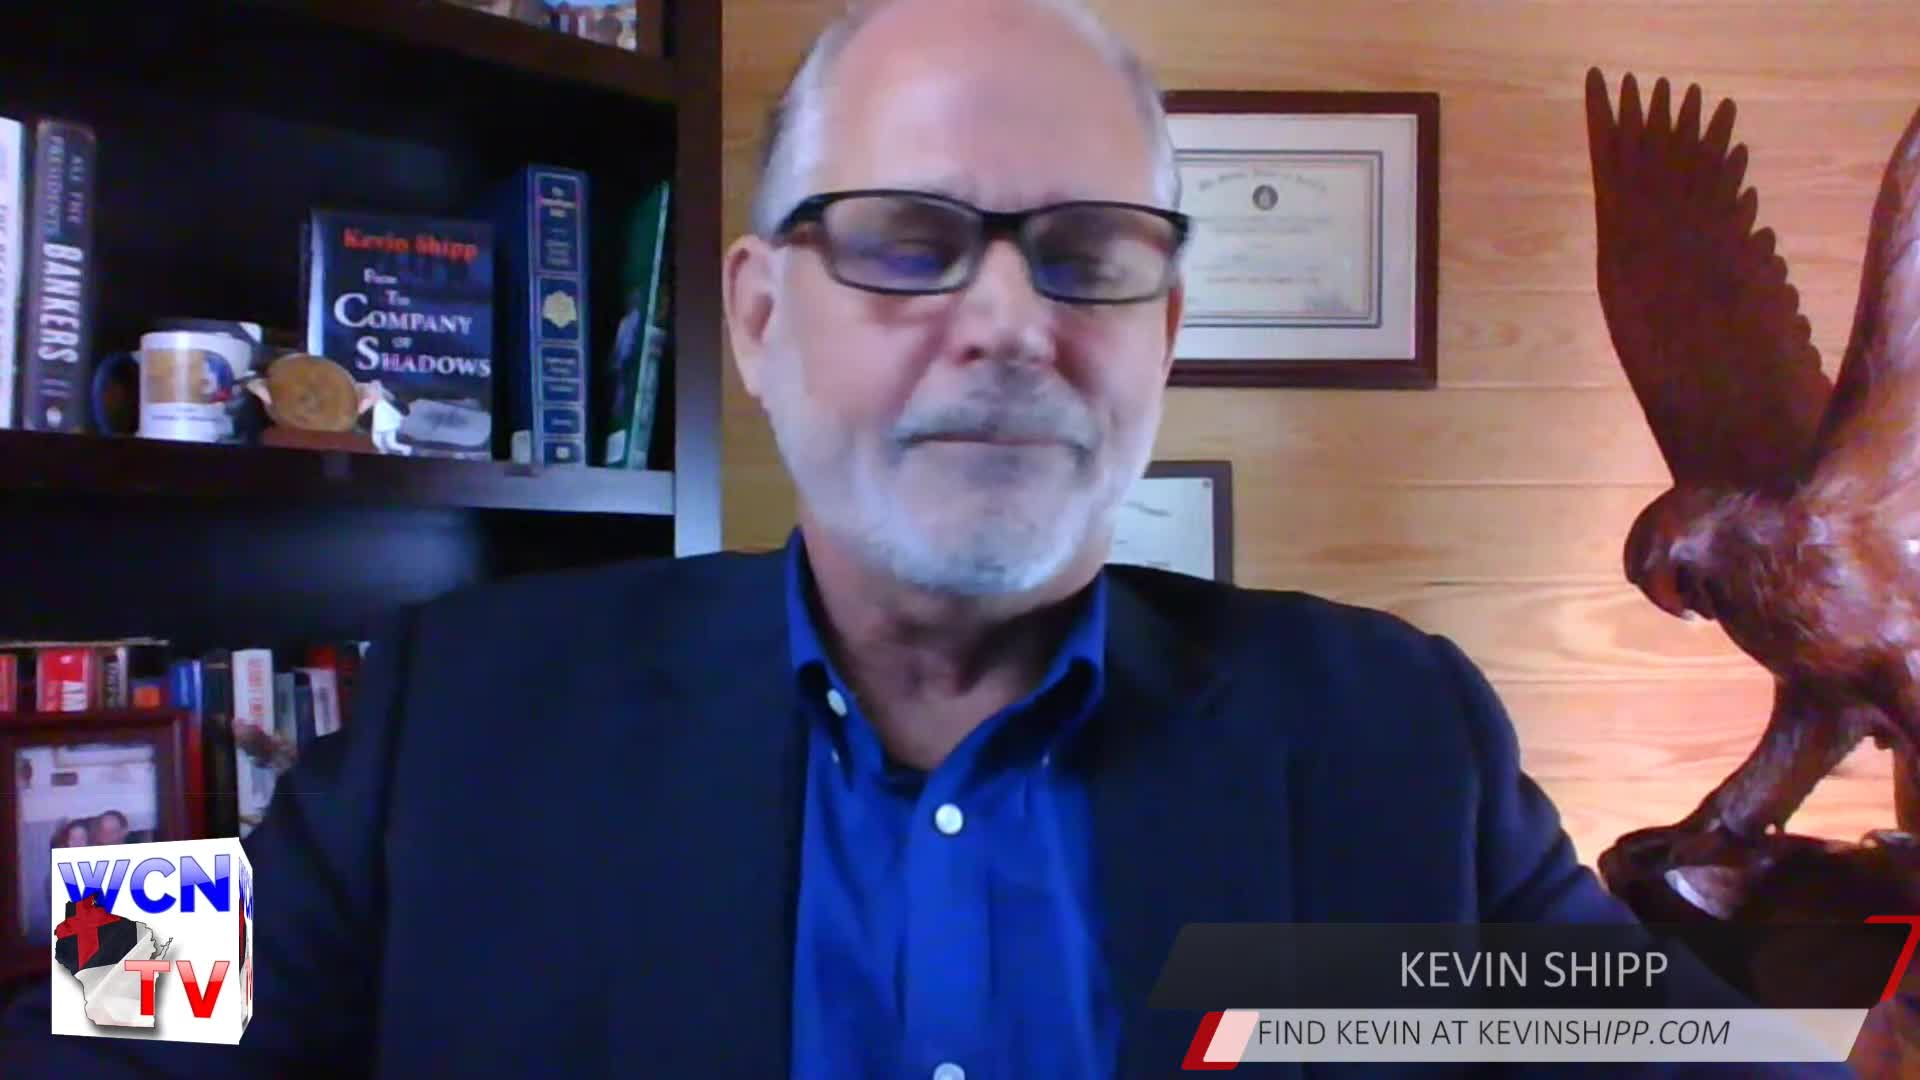 WCN-TV July 29, 2020 with Rob Pue and Guest Kevin Shipp